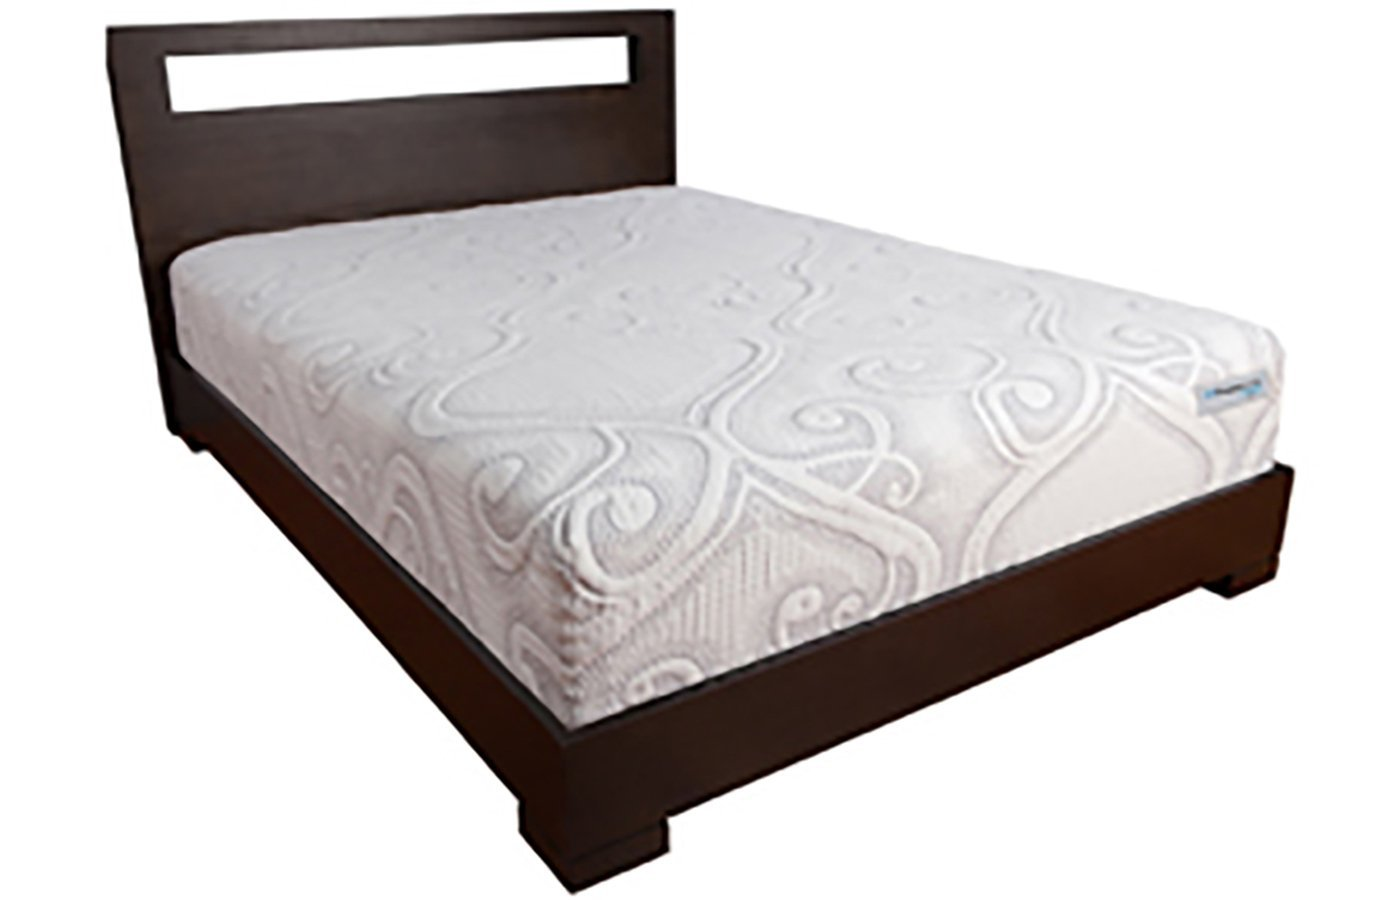 Full Sealy Posturepedic Hybrid 10.5'' Luxury Firm Mattress